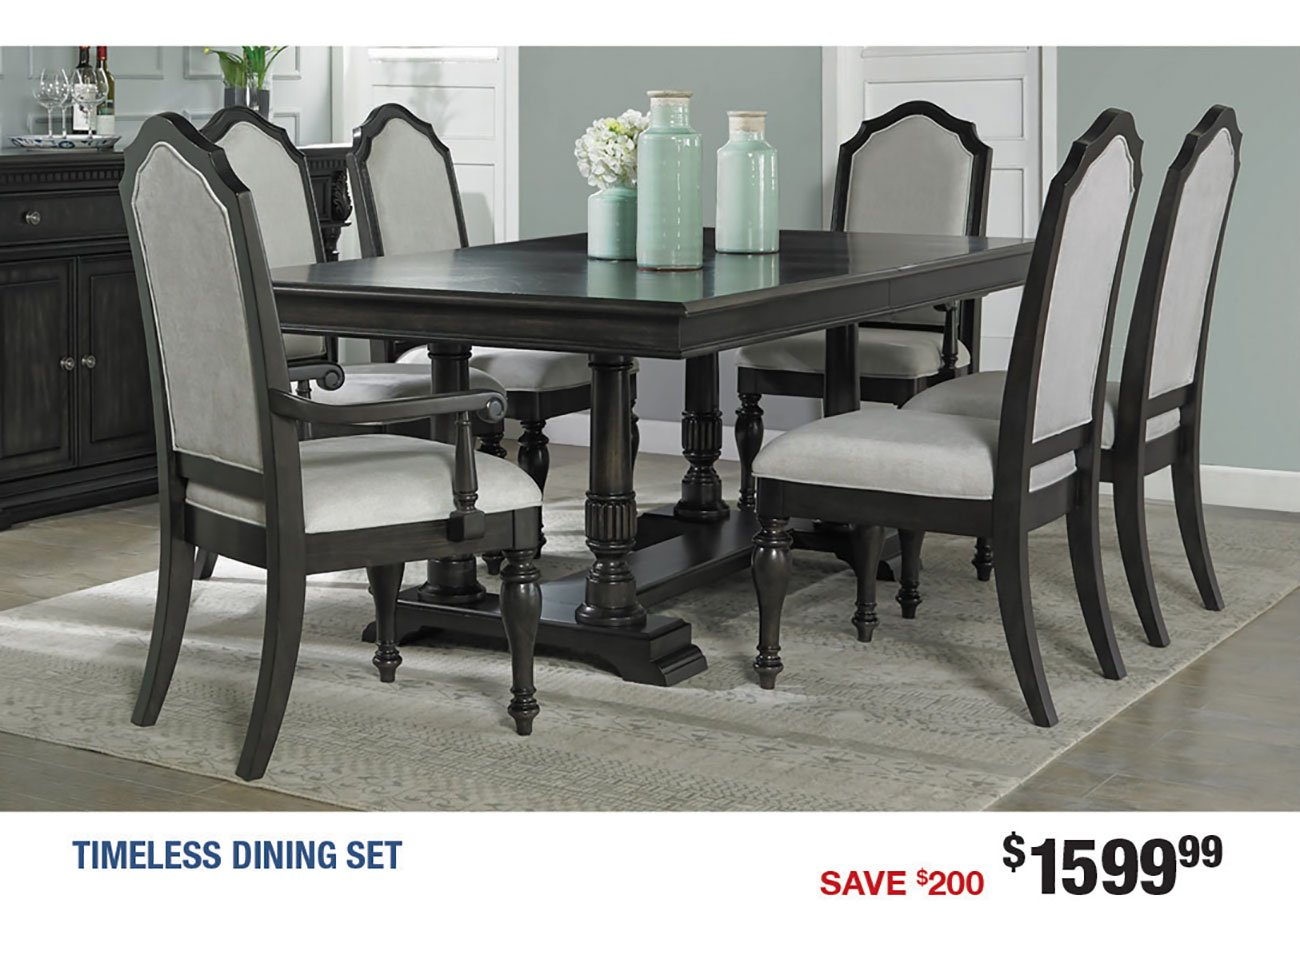 Timeless-Dining-Set